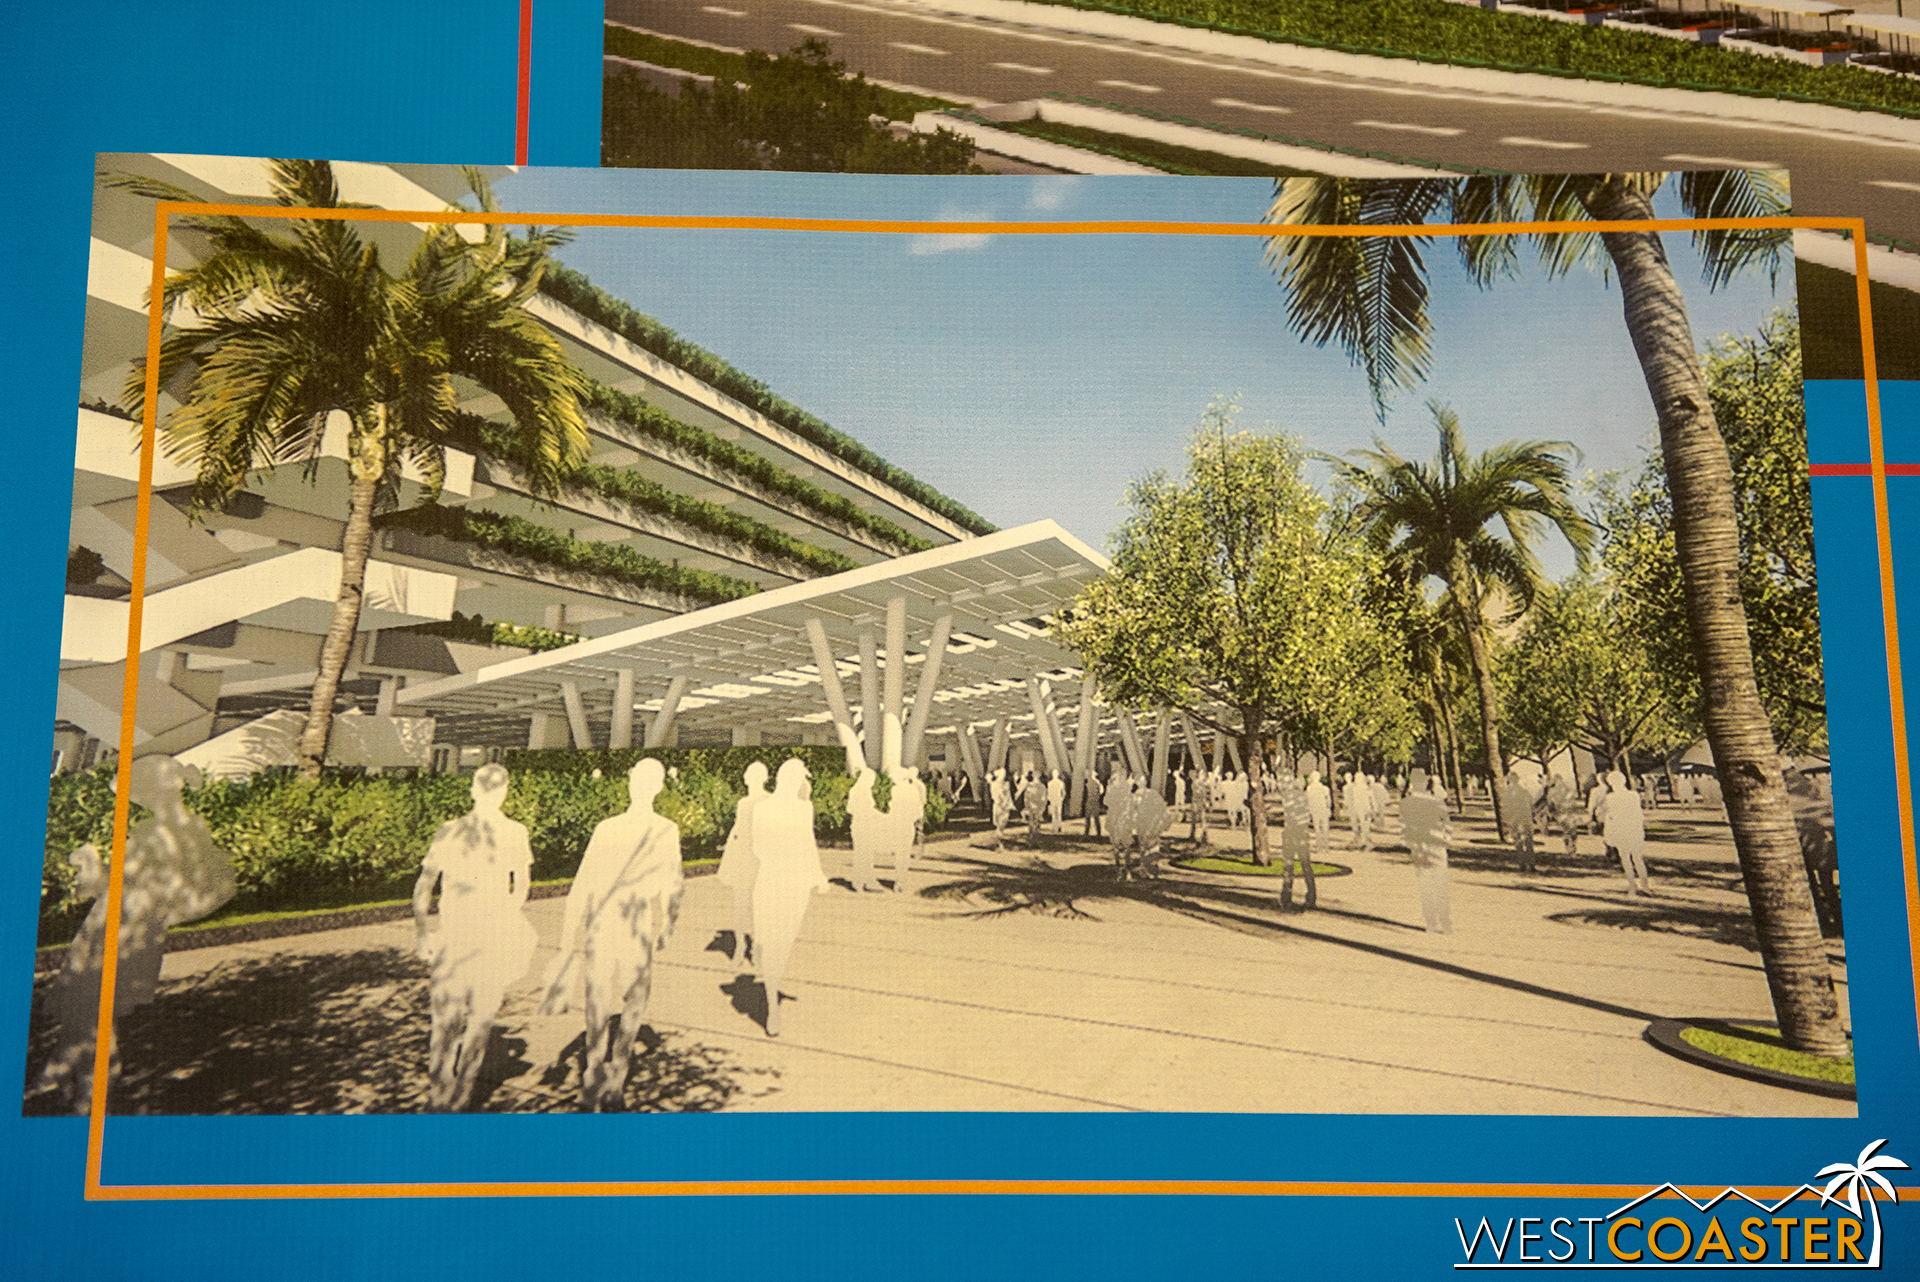 The loading promenade will look like this by the new structure.